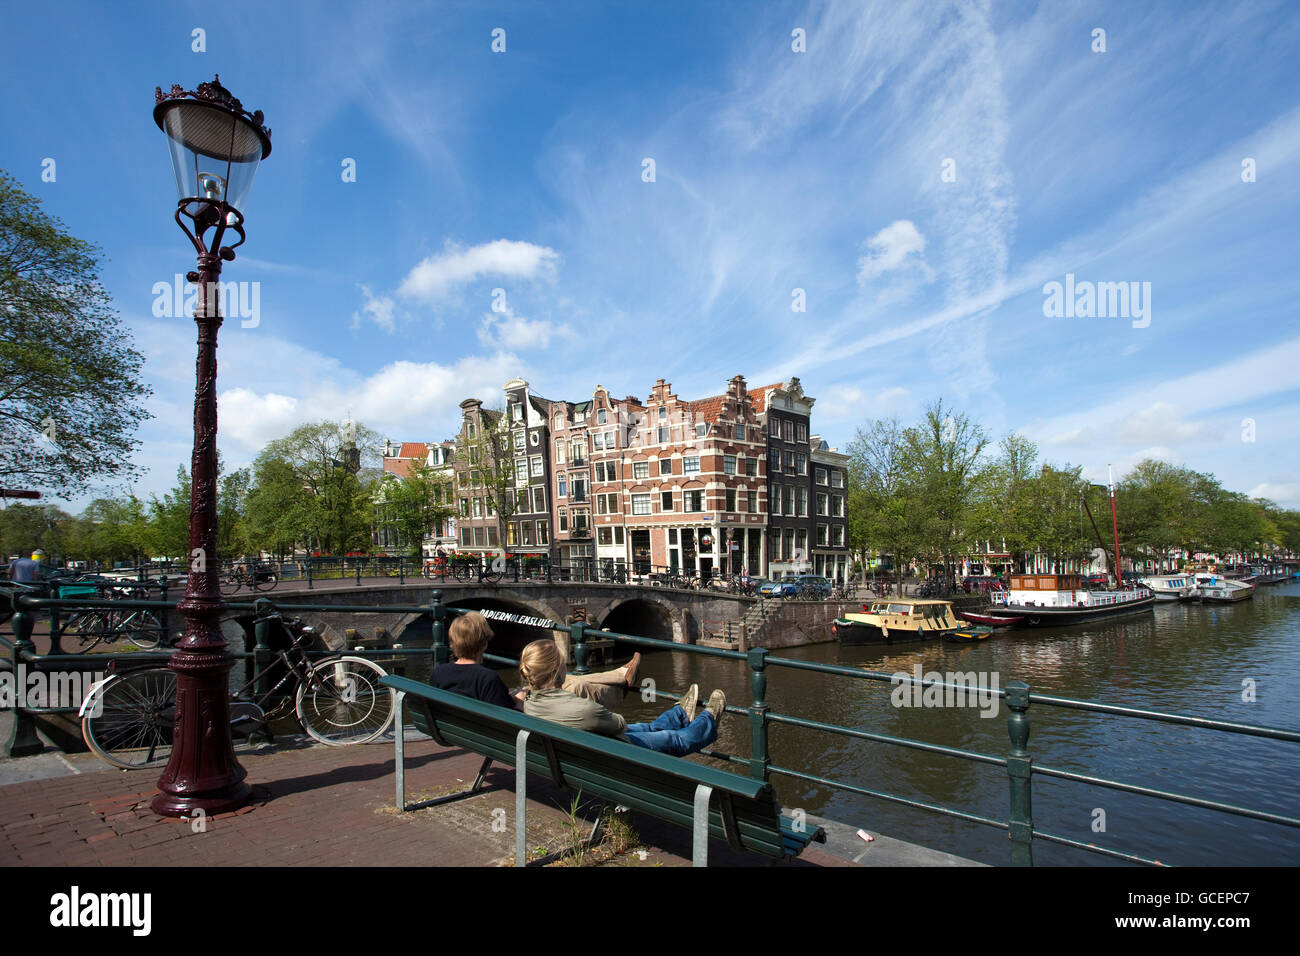 North Grachtengordel or Amsterdam Canal District, Prinsengracht canal corner Brouwer, Amsterdam, Holland, Netherlands, - Stock Image